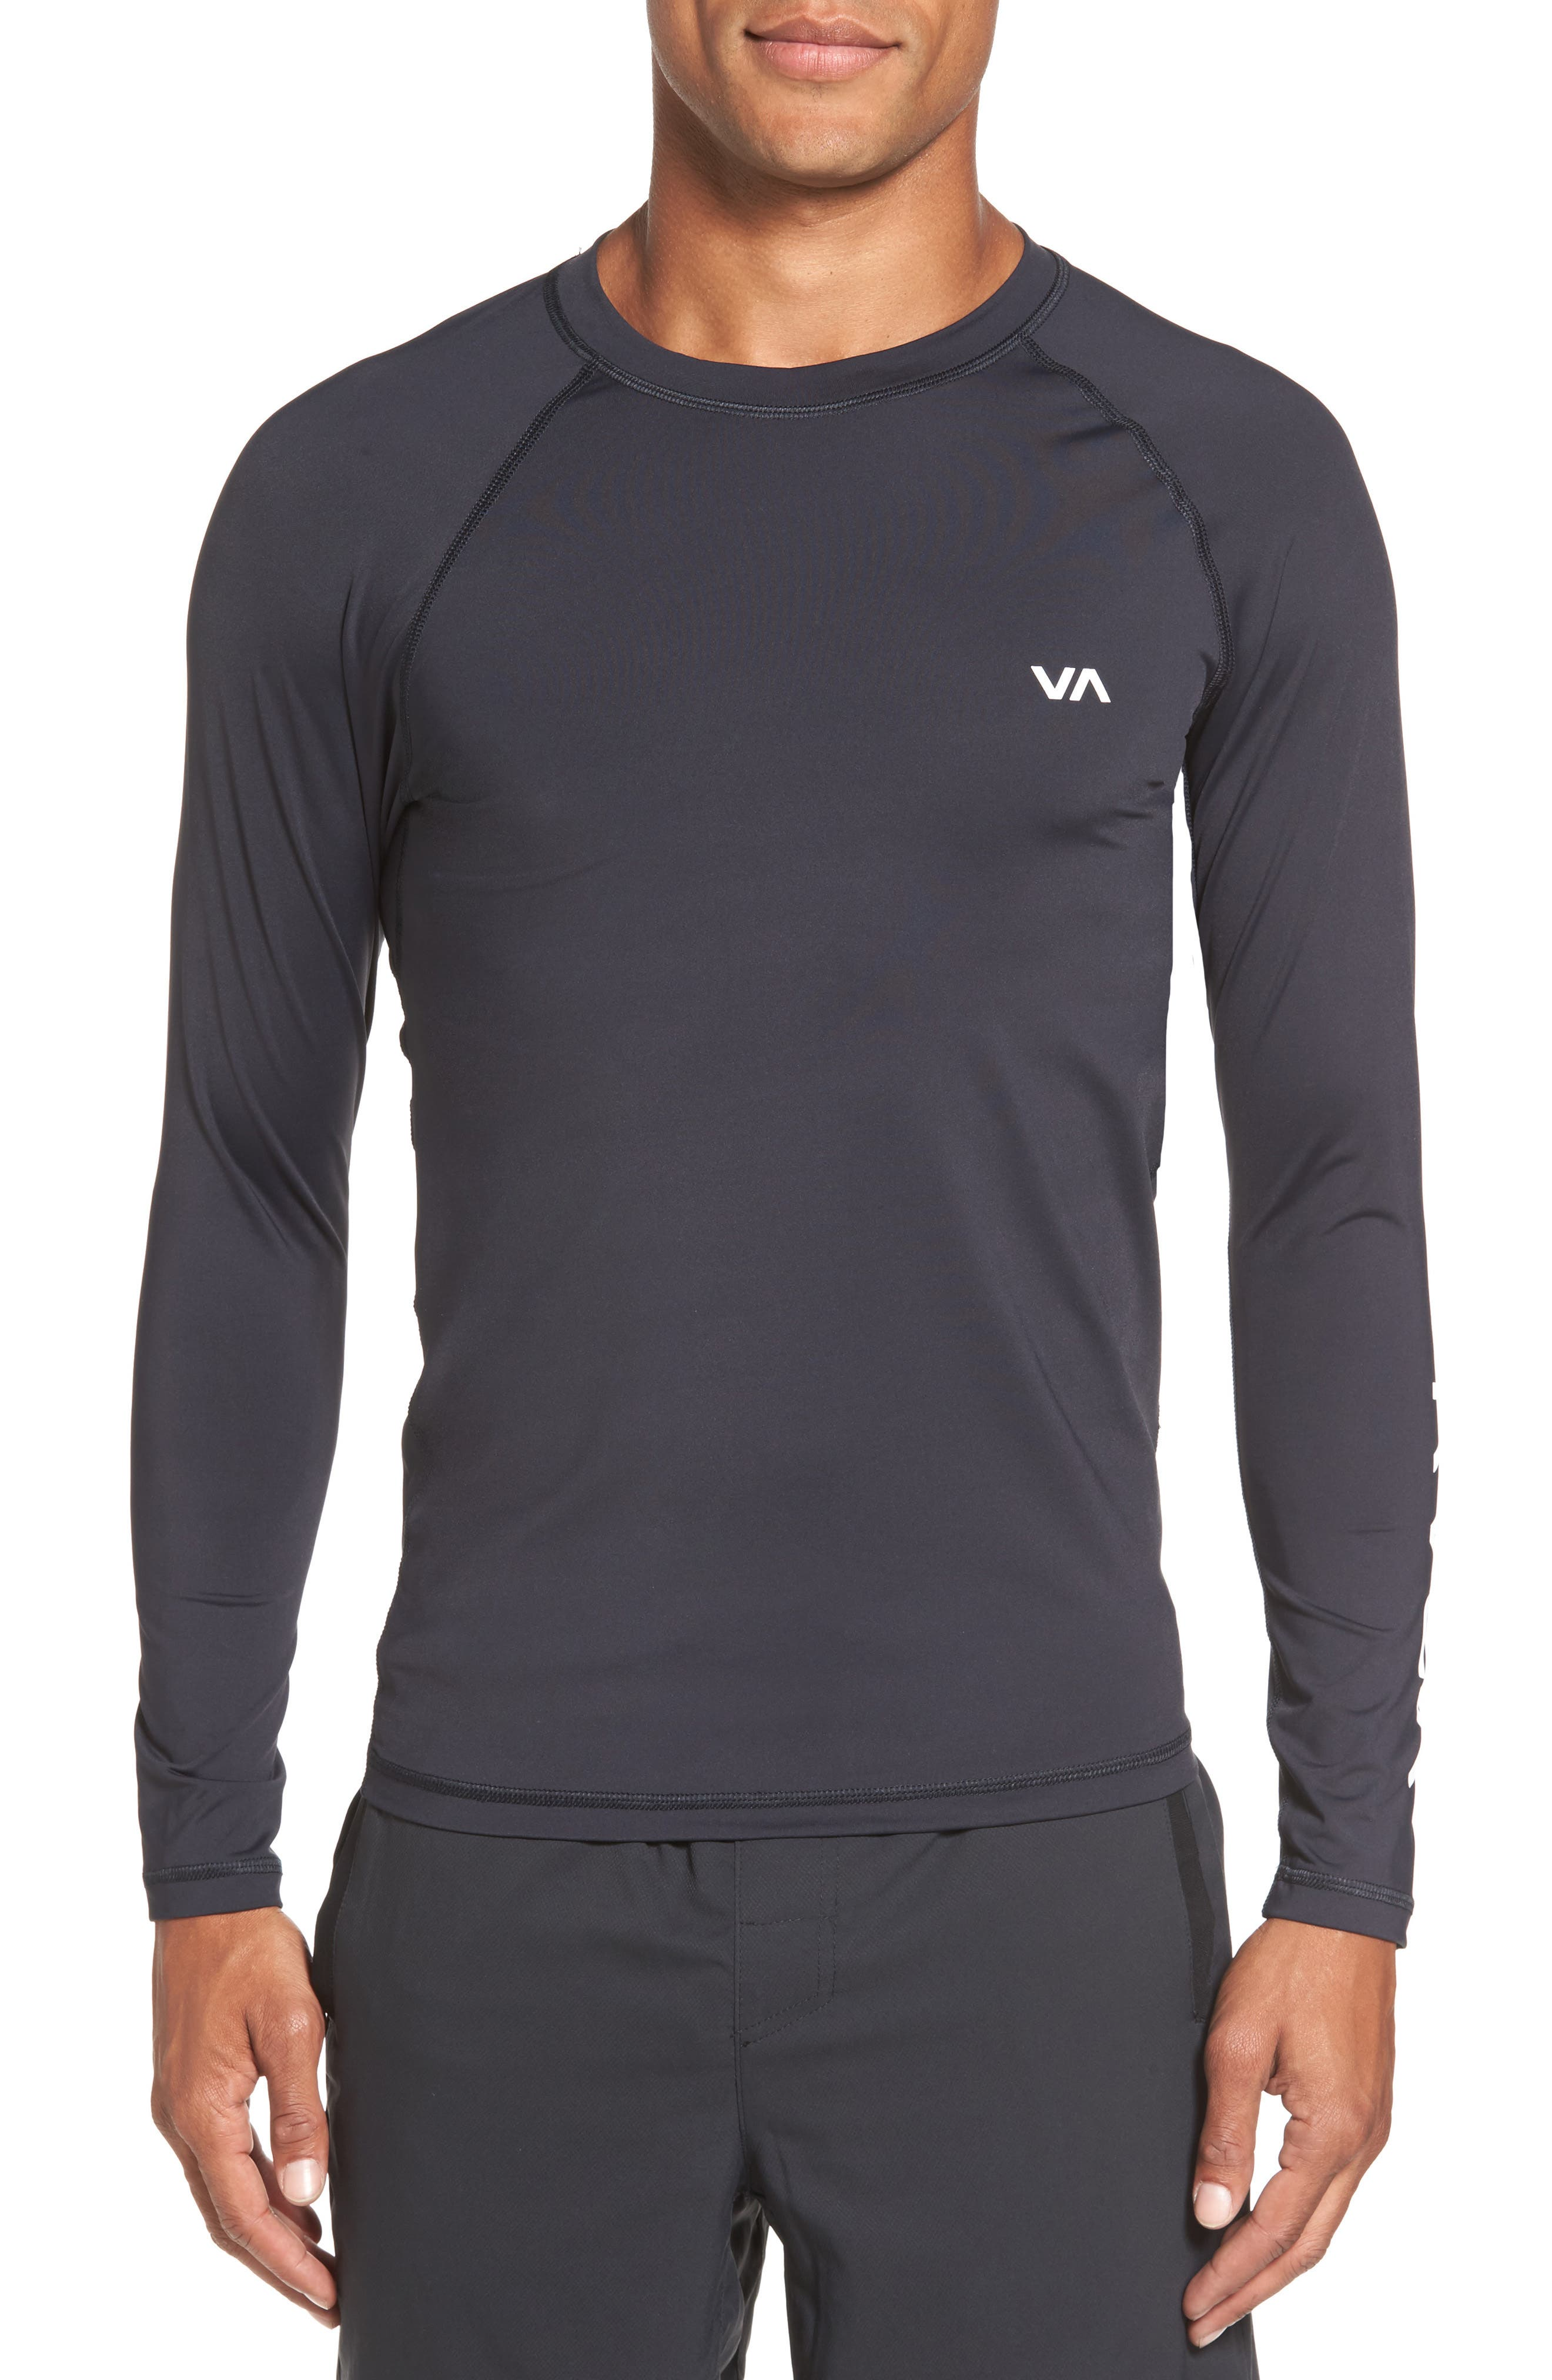 Alternate Image 1 Selected - RVCA VA Sport Compression Shirt